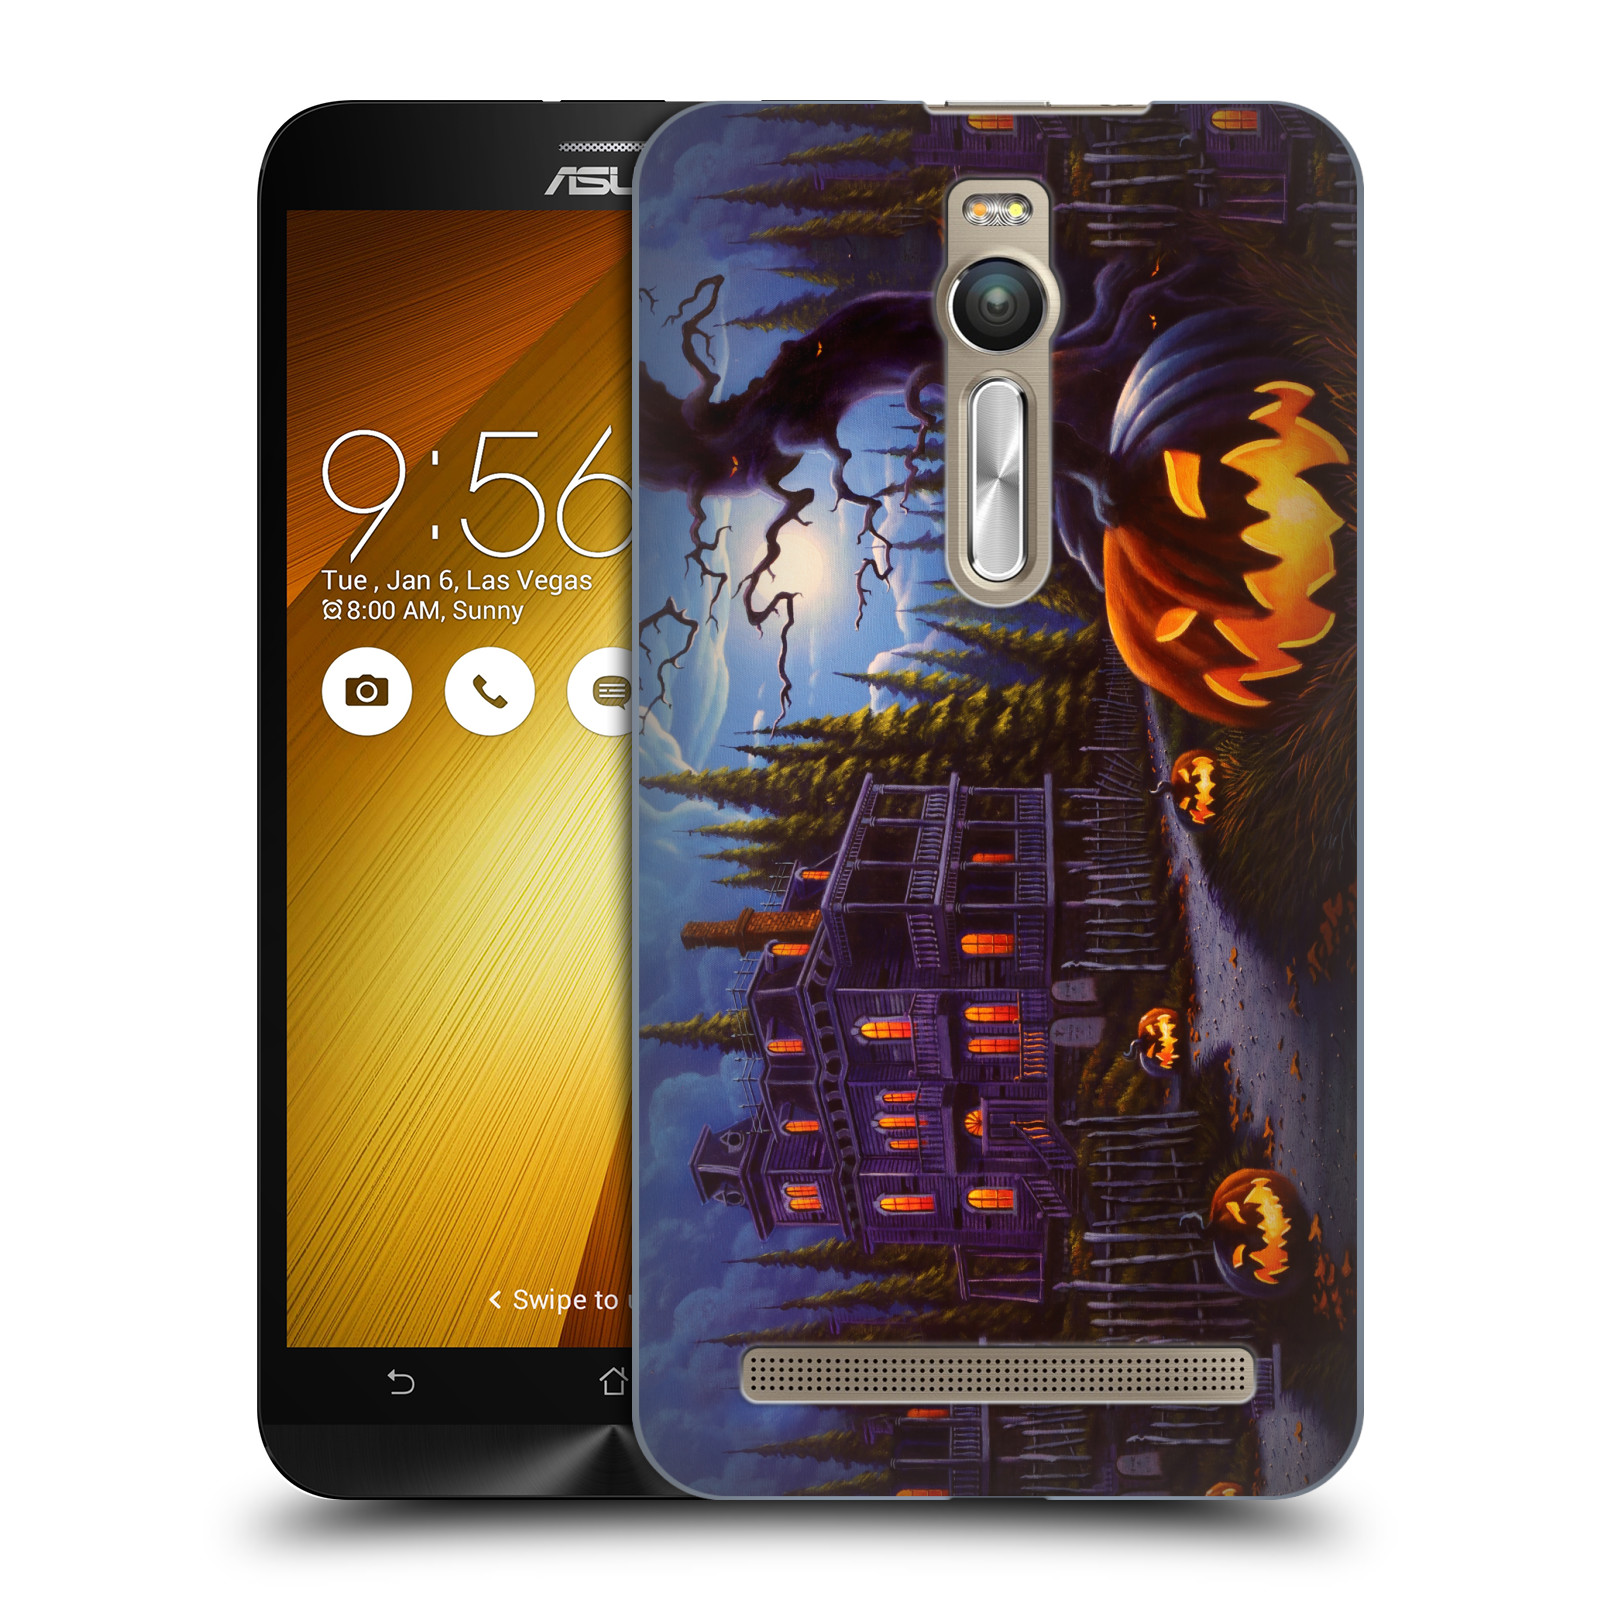 OFFICIAL-GENO-PEOPLES-ART-HALLOWEEN-HARD-BACK-CASE-FOR-ASUS-ZENFONE-PHONES